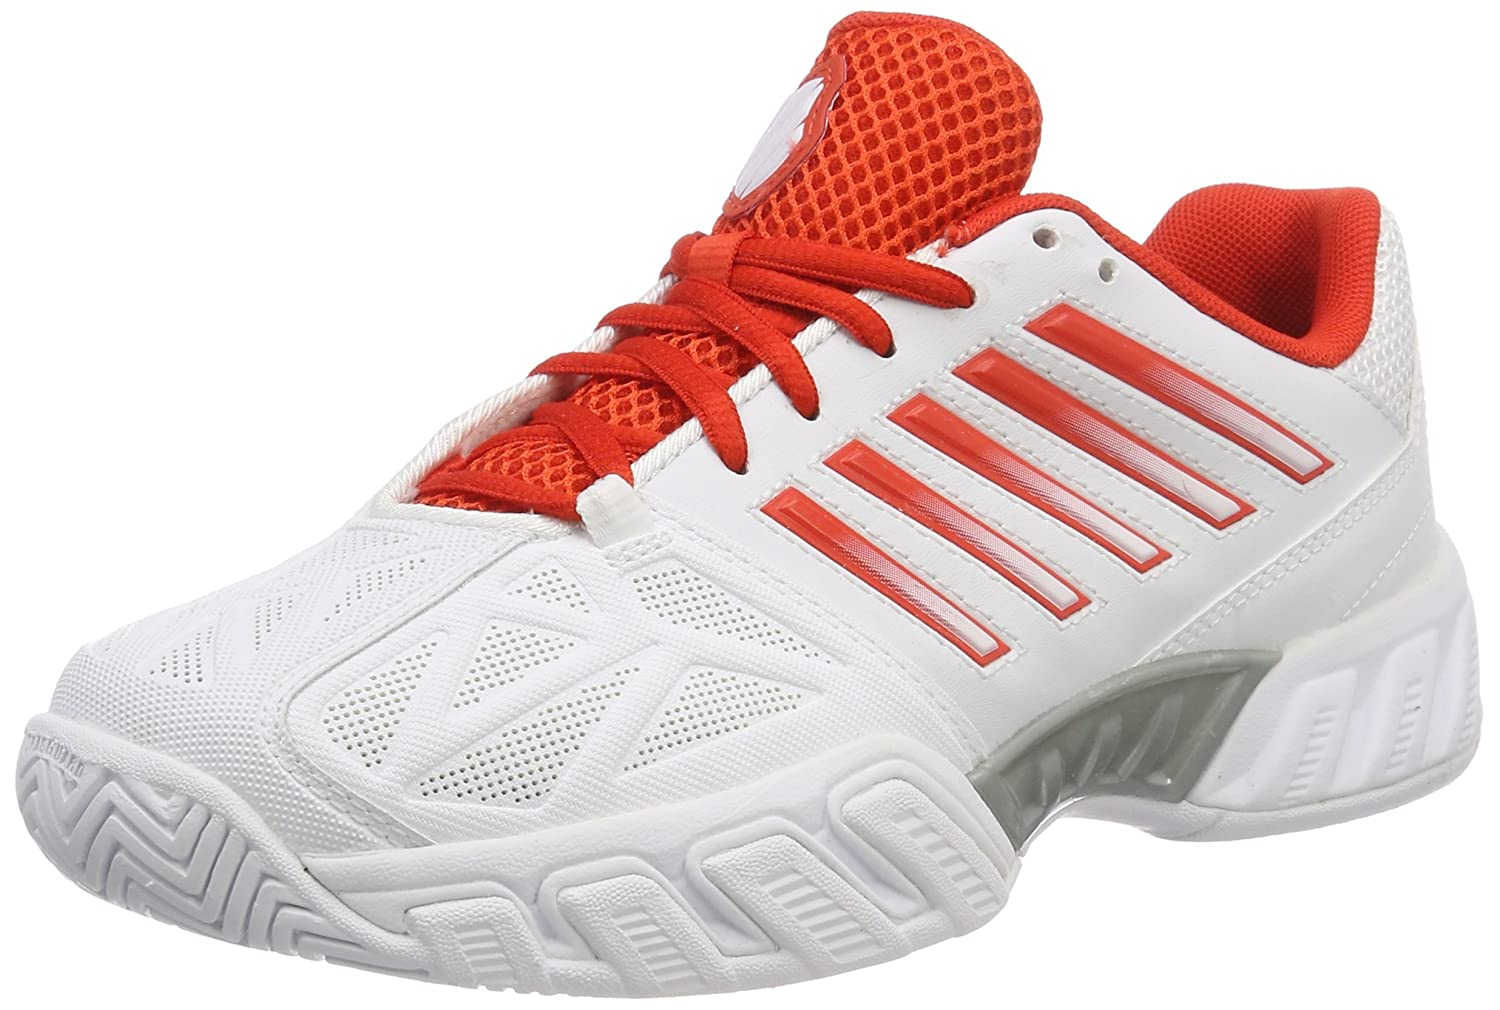 K-Swiss Bigshot Light 3 Womens Tennis Shoe B07944NJ2Z 8.5 B(M) US|White/Fiesta/Silver